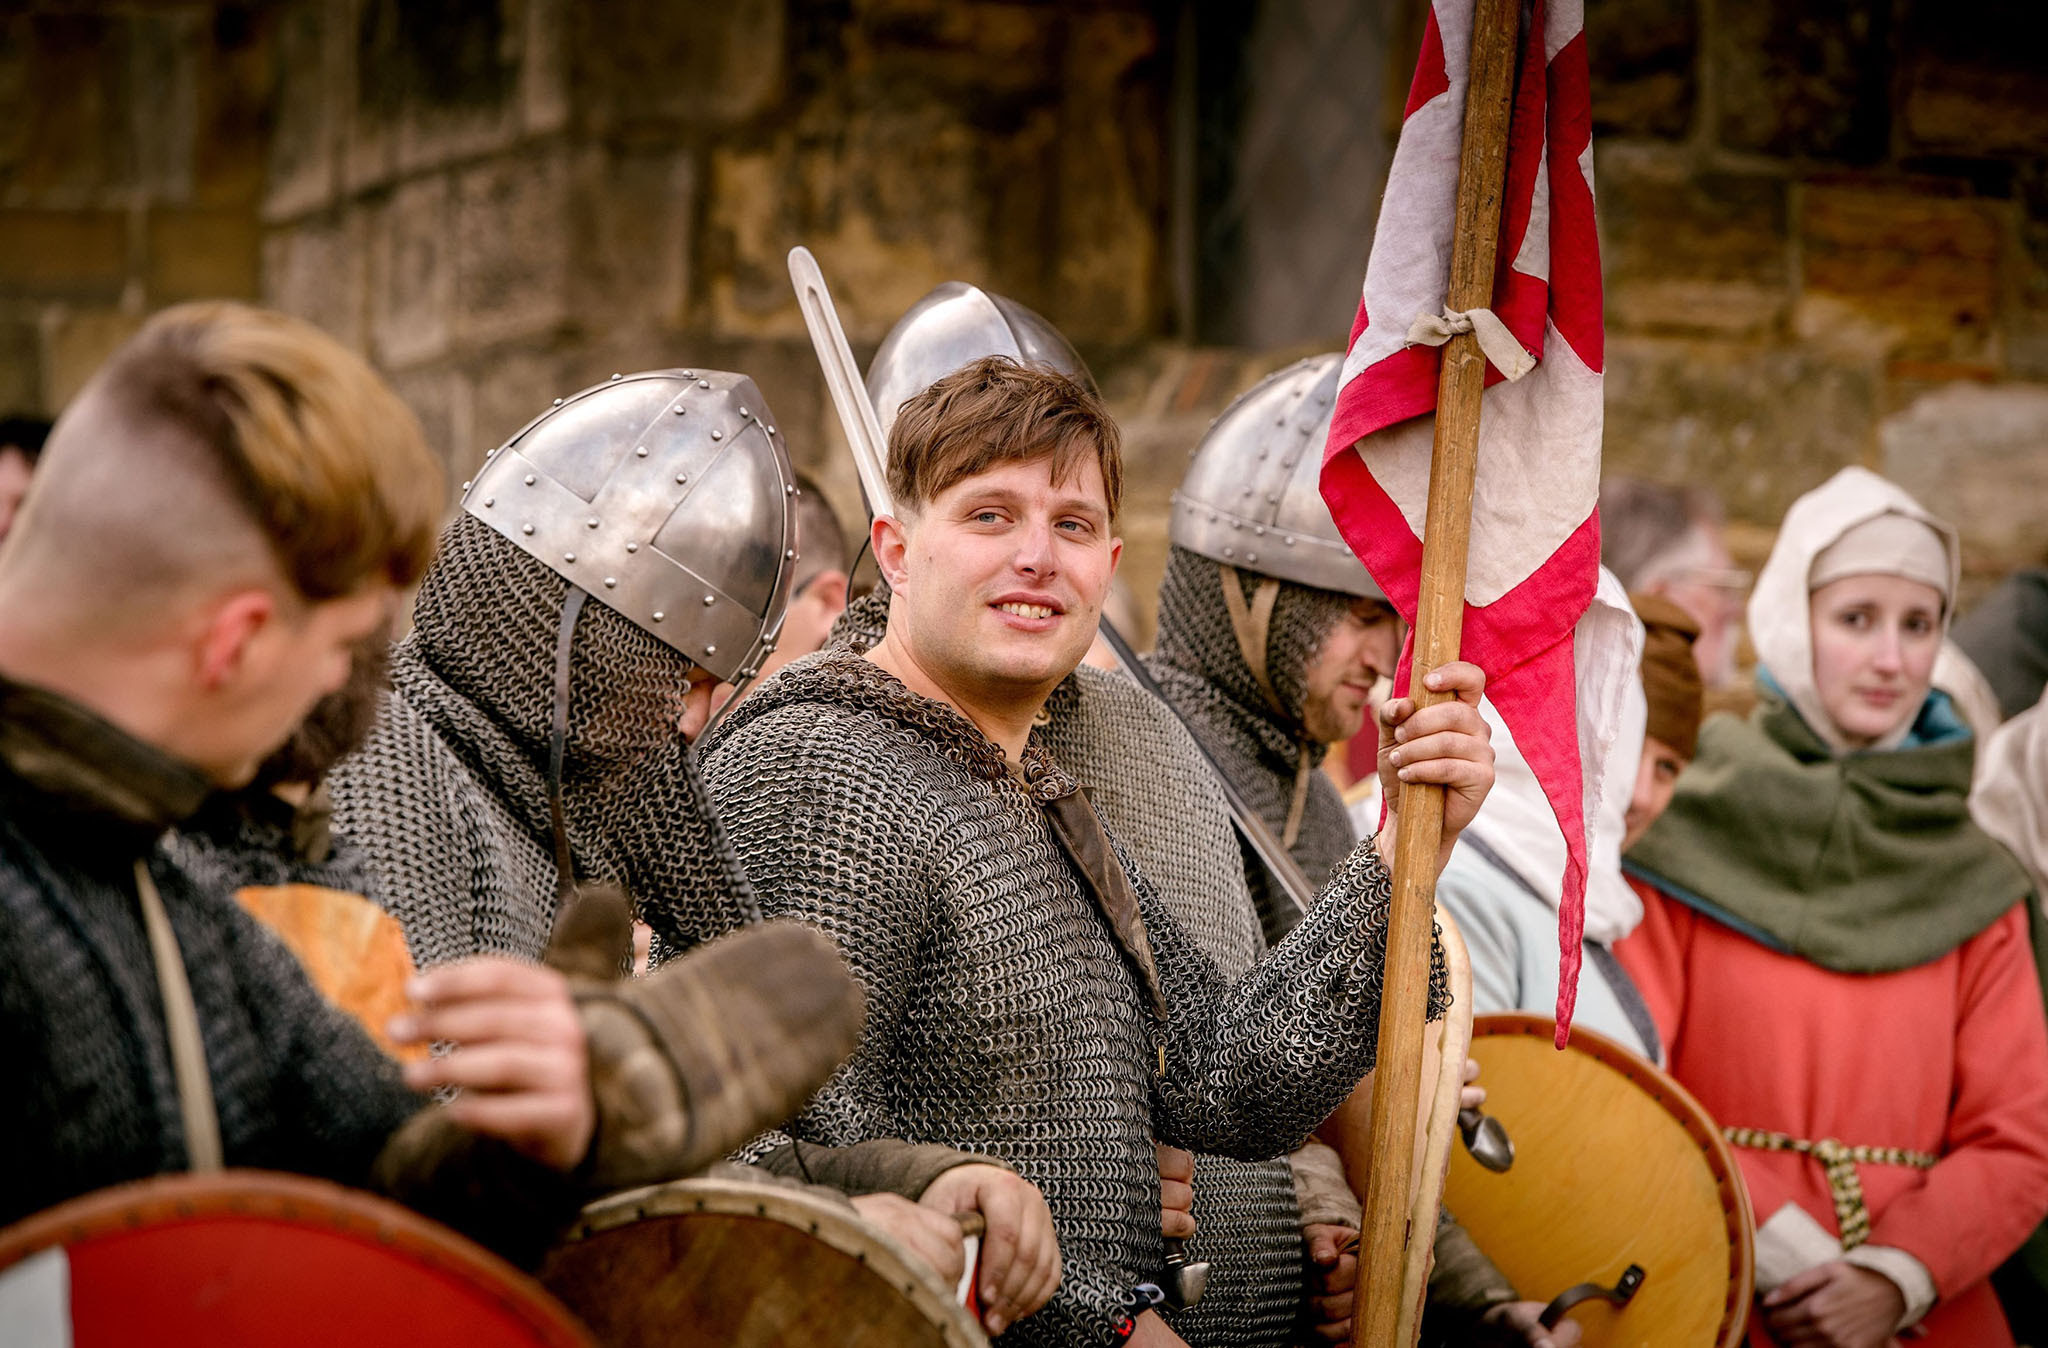 English Heritage handout photo of re-enactors arriving at Battle Abbey in Battle, near Hastings, ending their 300-mile cross-country journey in the East Sussex town where the Battle of Hastings was fought 950 years ago. PRESS ASSOCIATION Photo. Issue date: Friday October 14, 2016. Their three-week march began in York on September 25 and has taken them south on foot and on horseback in an echo of the journey King Harold made to fight in the battle. See PA story HERITAGE 1066. Photo credit should read: Jim Holden/English Heritage/PA Wire  NOTE TO EDITORS: This handout photo may only be used in for editorial reporting purposes for the contemporaneous illustration of events, things or the people in the image or facts mentioned in the caption. Reuse of the picture may require further permission from the copyright holder.